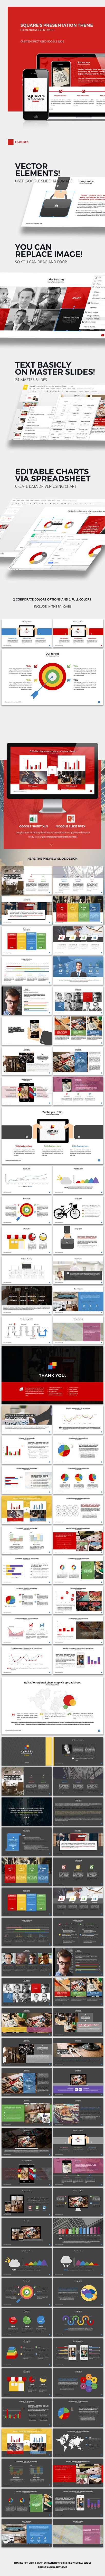 Buy Google Slide Online Presentation Template by rivatxfz on GraphicRiver. Simple creative square's online presentation 2016 google slides templates design descriptions: A simple and creative ... Download here: https://graphicriver.net/item/google-slide-online-presentation-template/16292305?ref=alena994